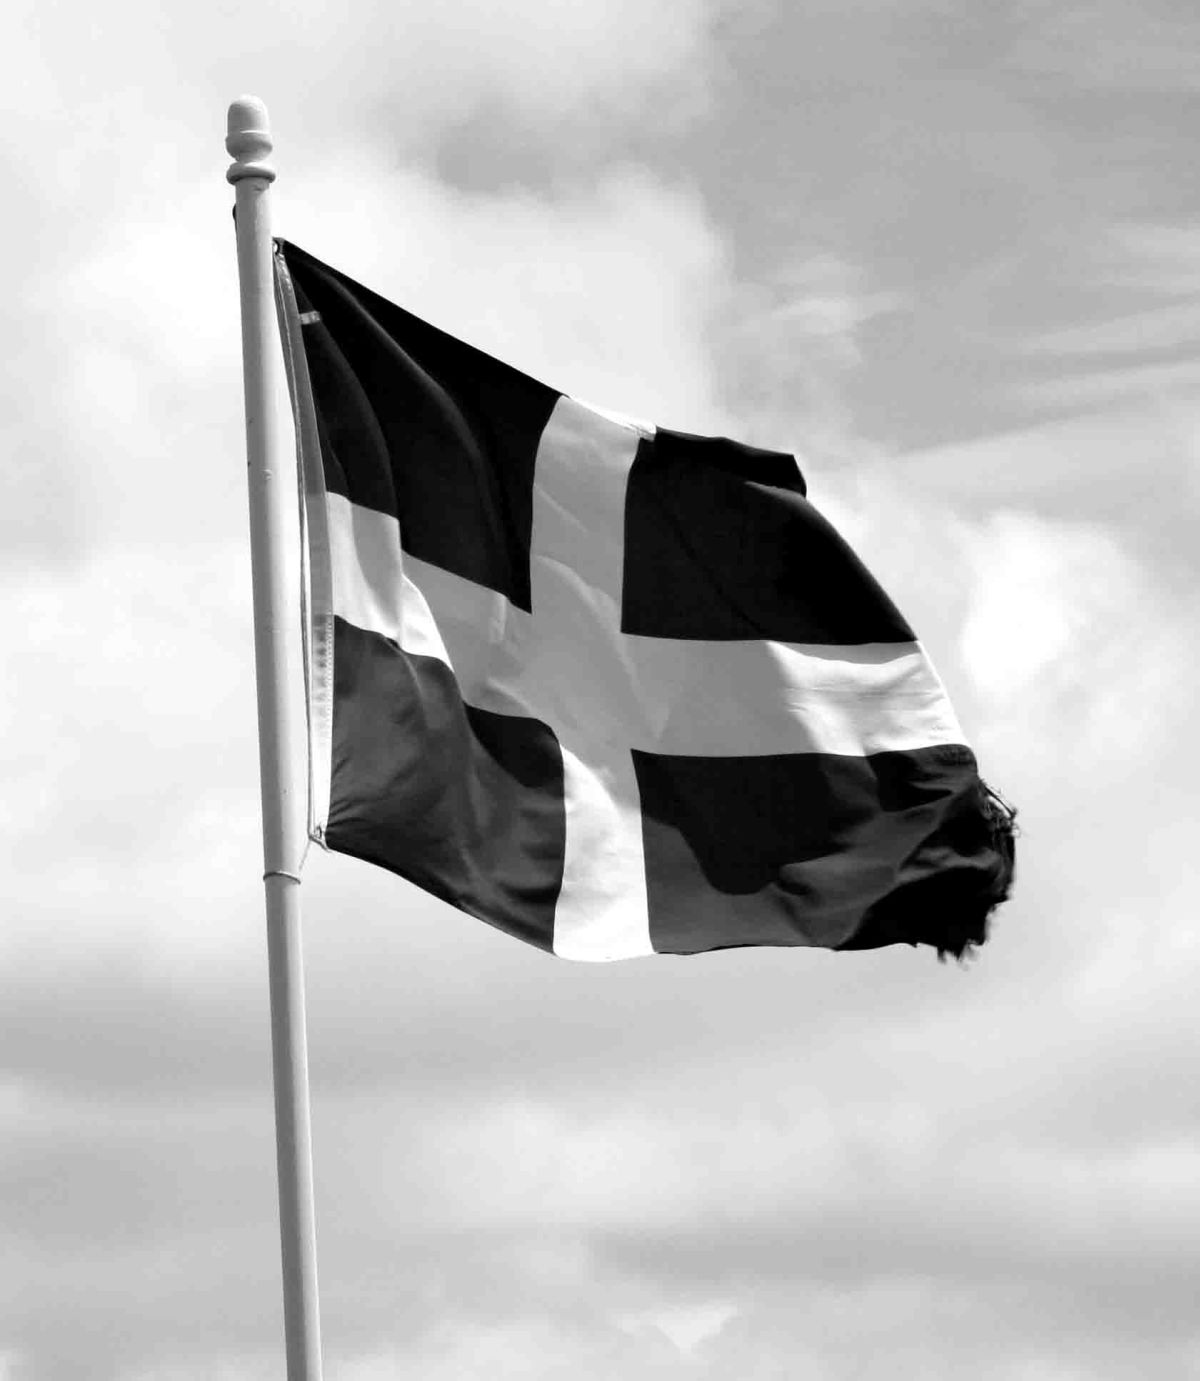 Cornish granted minority status within the UK